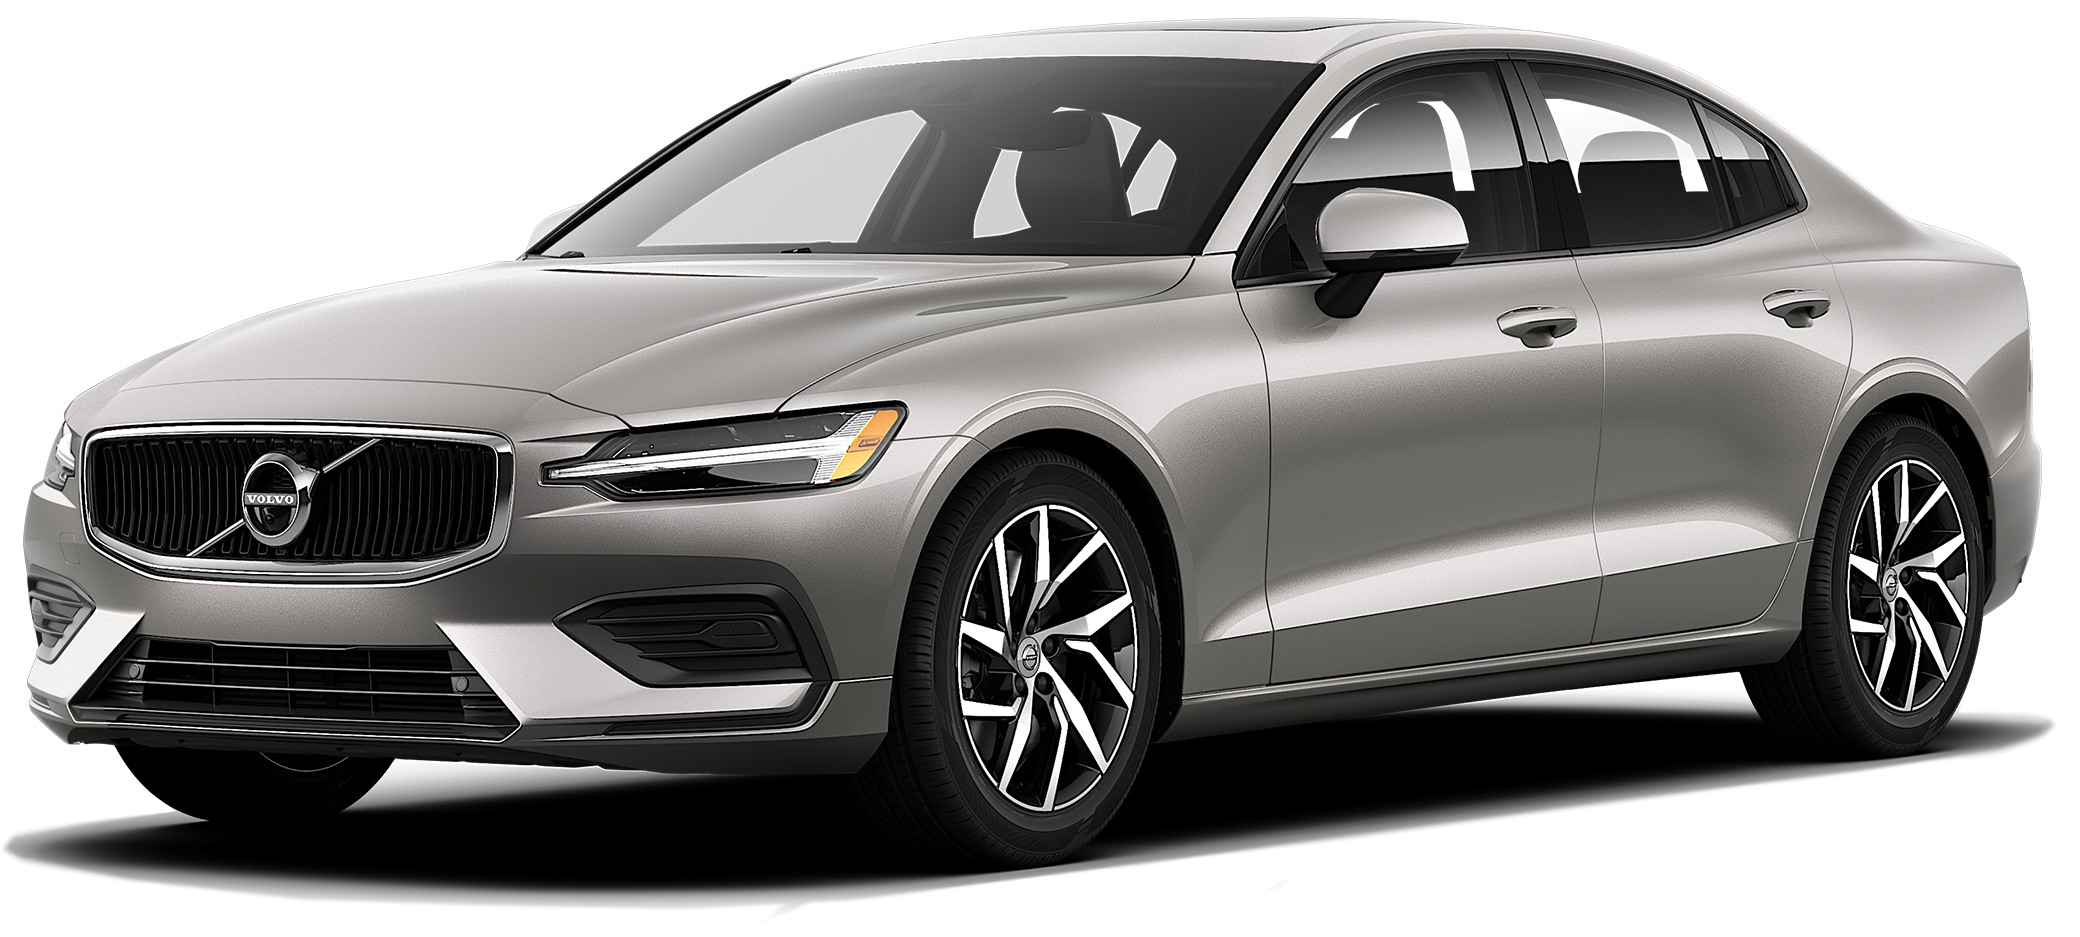 2019 volvo s60 incentives  specials  u0026 offers in dulles va